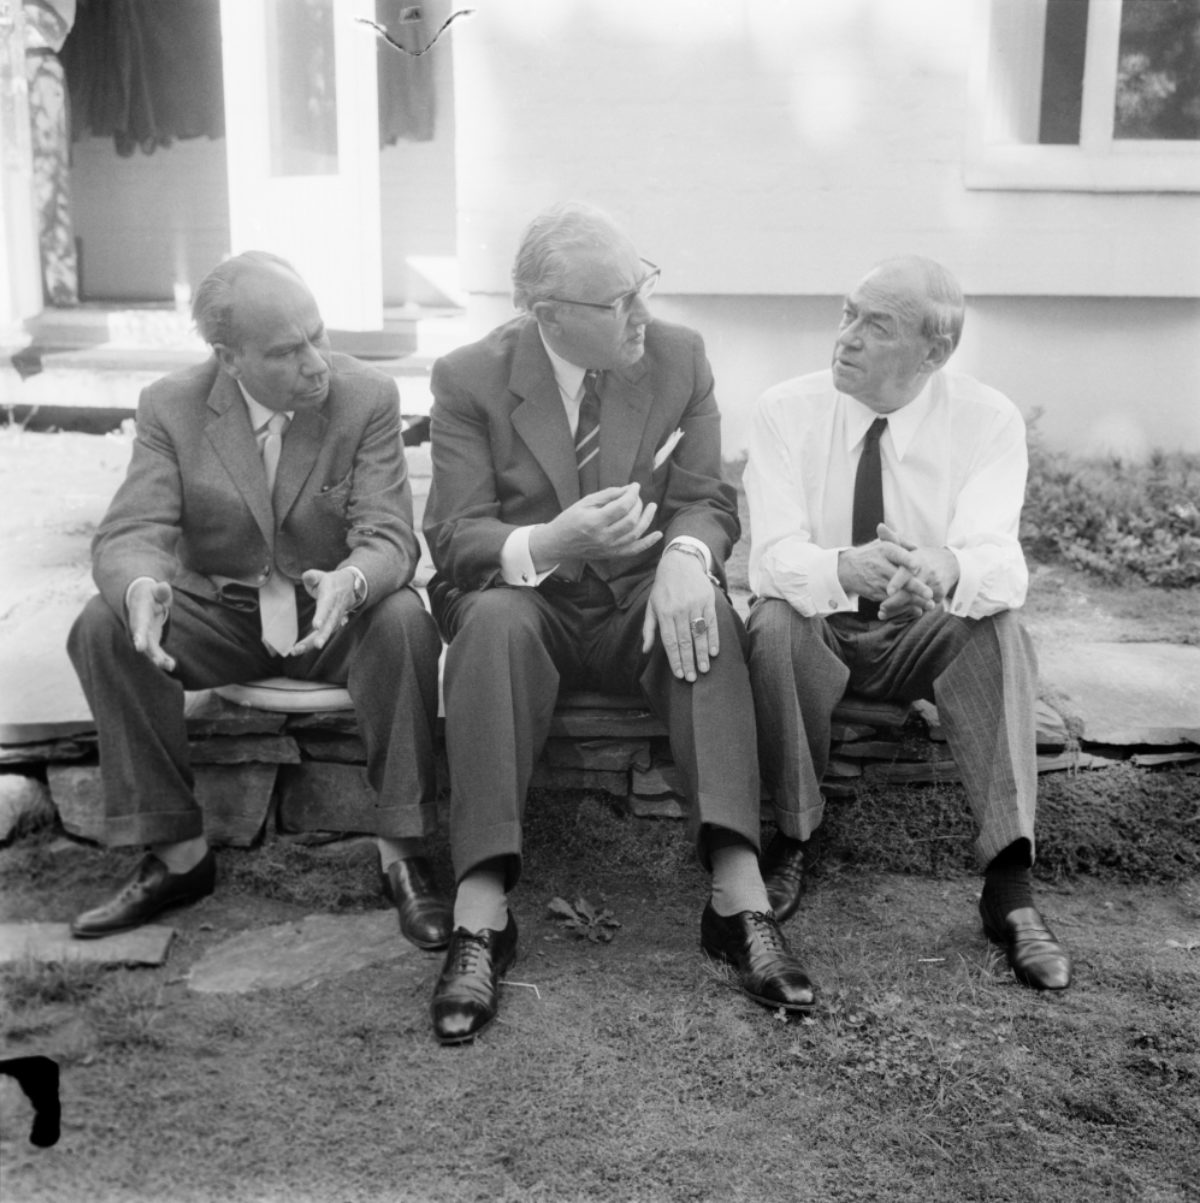 German city planners Johann Hebebrandt and Werner Hollantz visiting Alvar Aalto at his office in Munkkiniemi at the turn of the 1950s and 1960s.​ Photo: / Uusi Suomi - Iltalehti / JOKA / Finnish Heritage Agency​